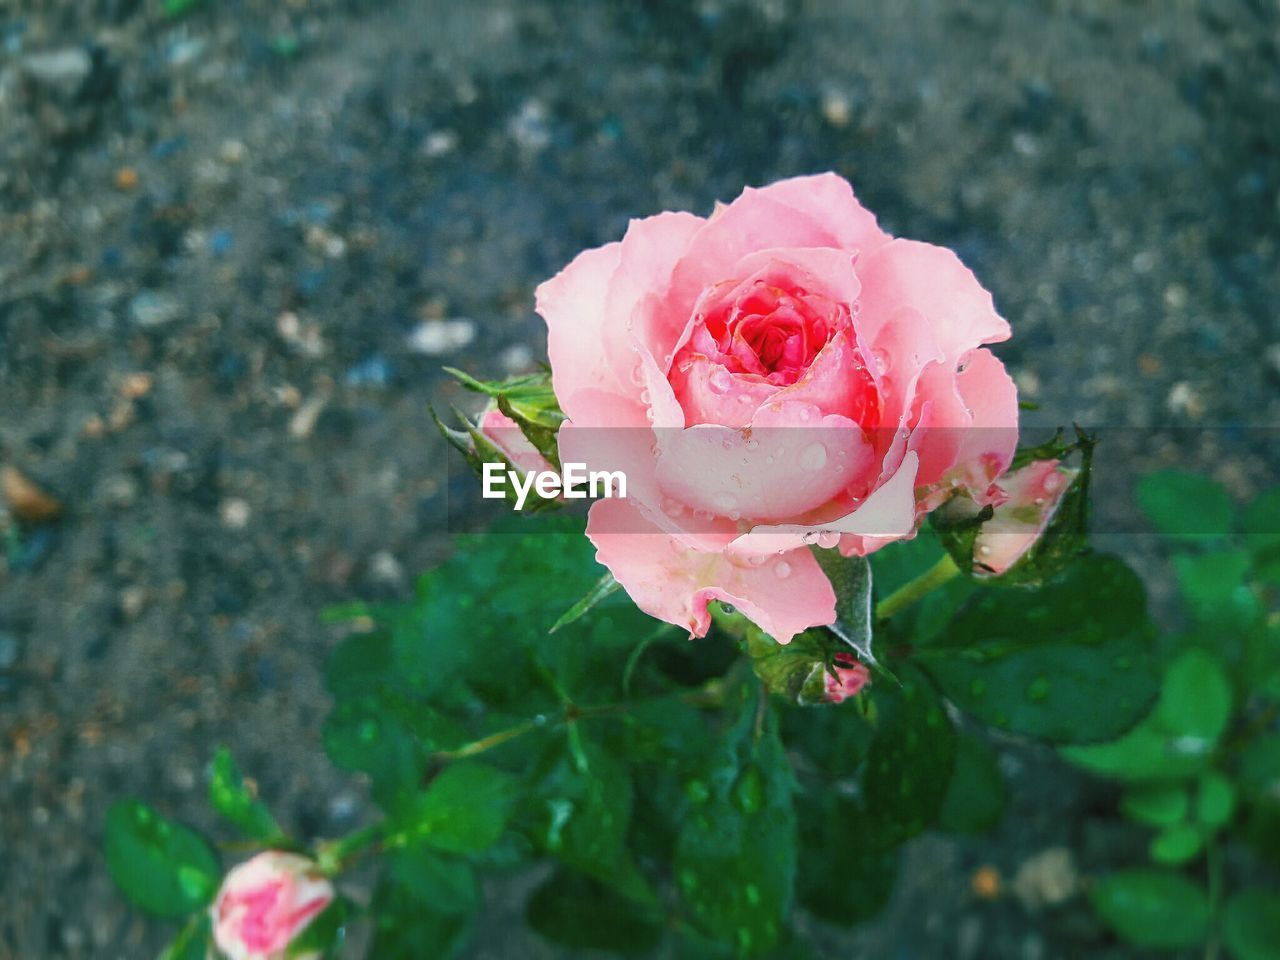 flower, rose - flower, petal, pink color, fragility, nature, flower head, growth, beauty in nature, plant, no people, freshness, blooming, outdoors, day, close-up, wild rose, leaf, water